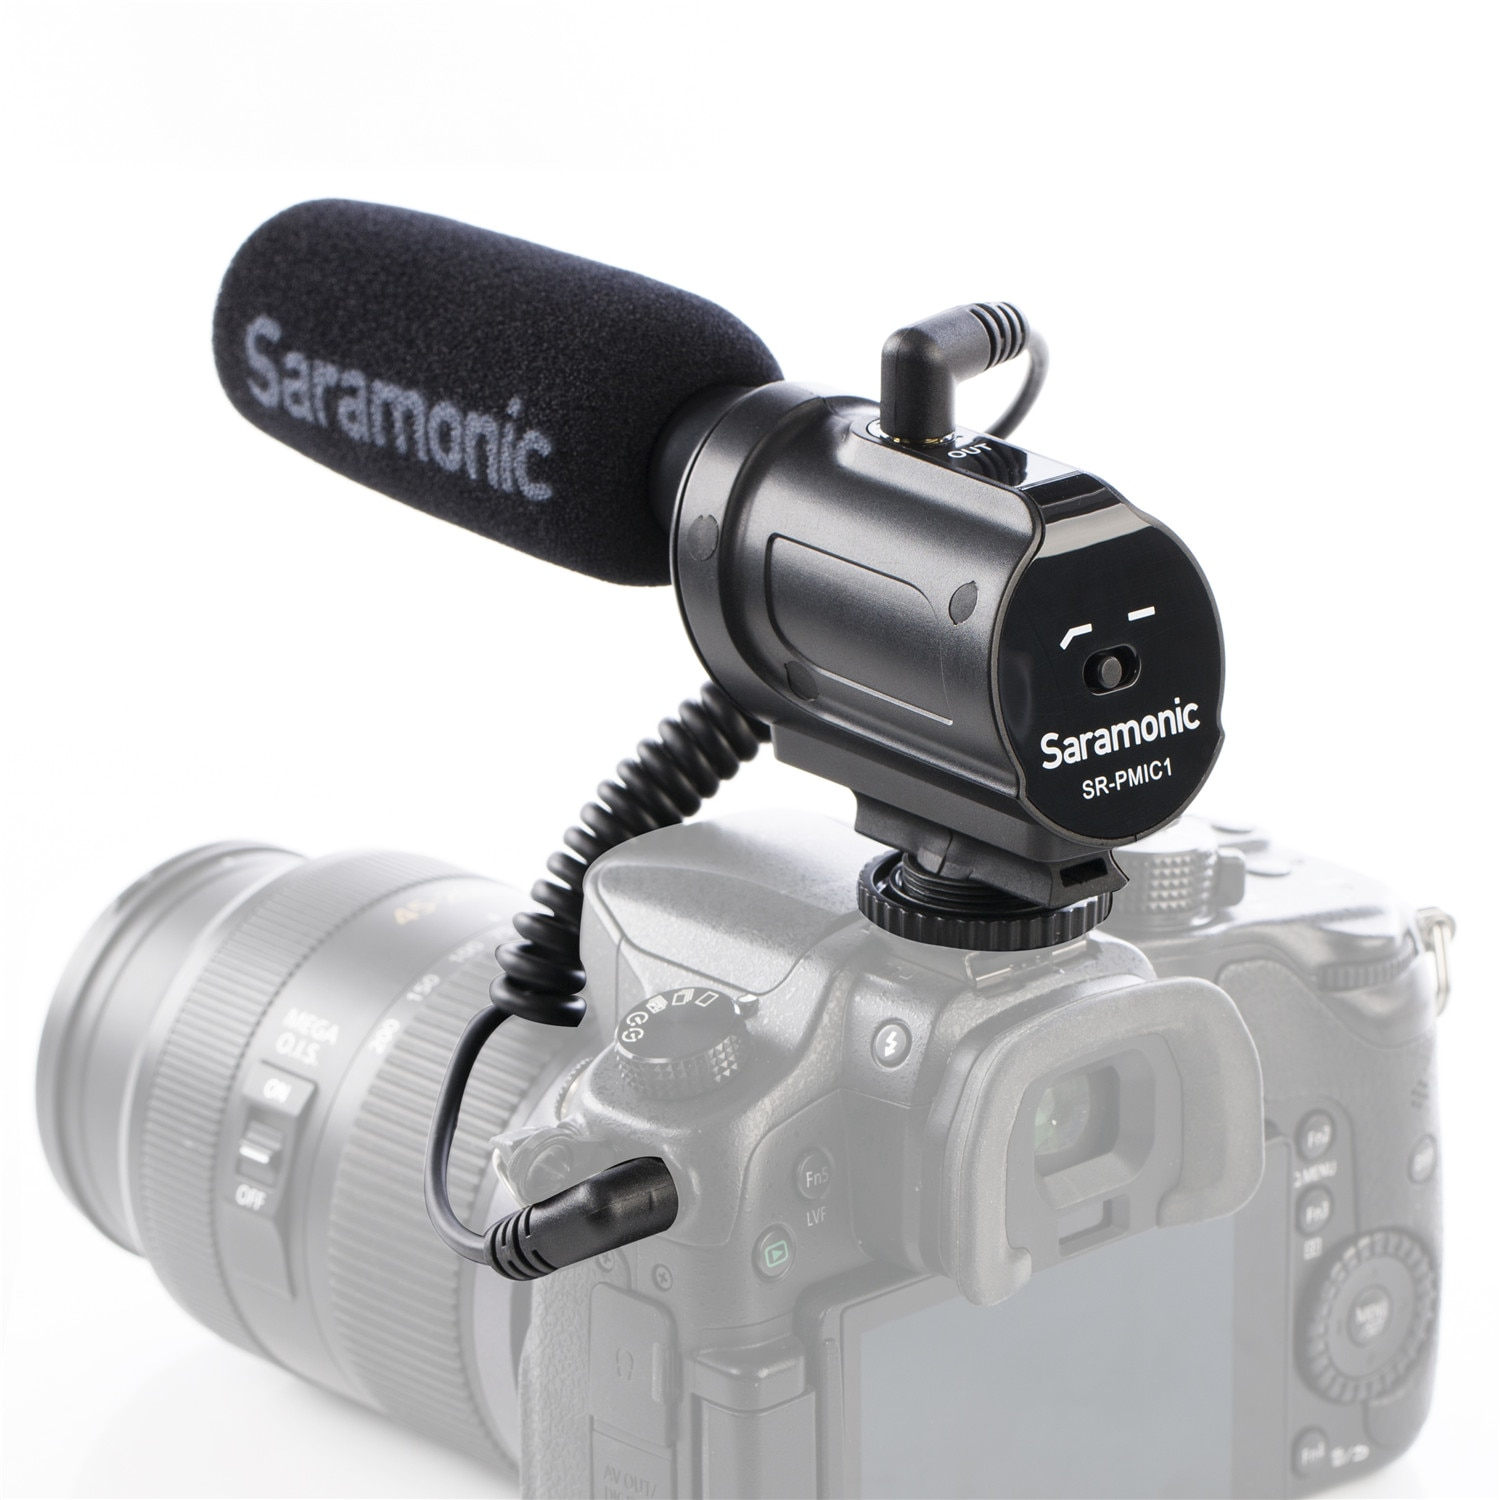 Saramonic SR-PMIC1 Super-cardioid unidirectional condenser microphone for use on DSLR cameras/camcorders enlarge